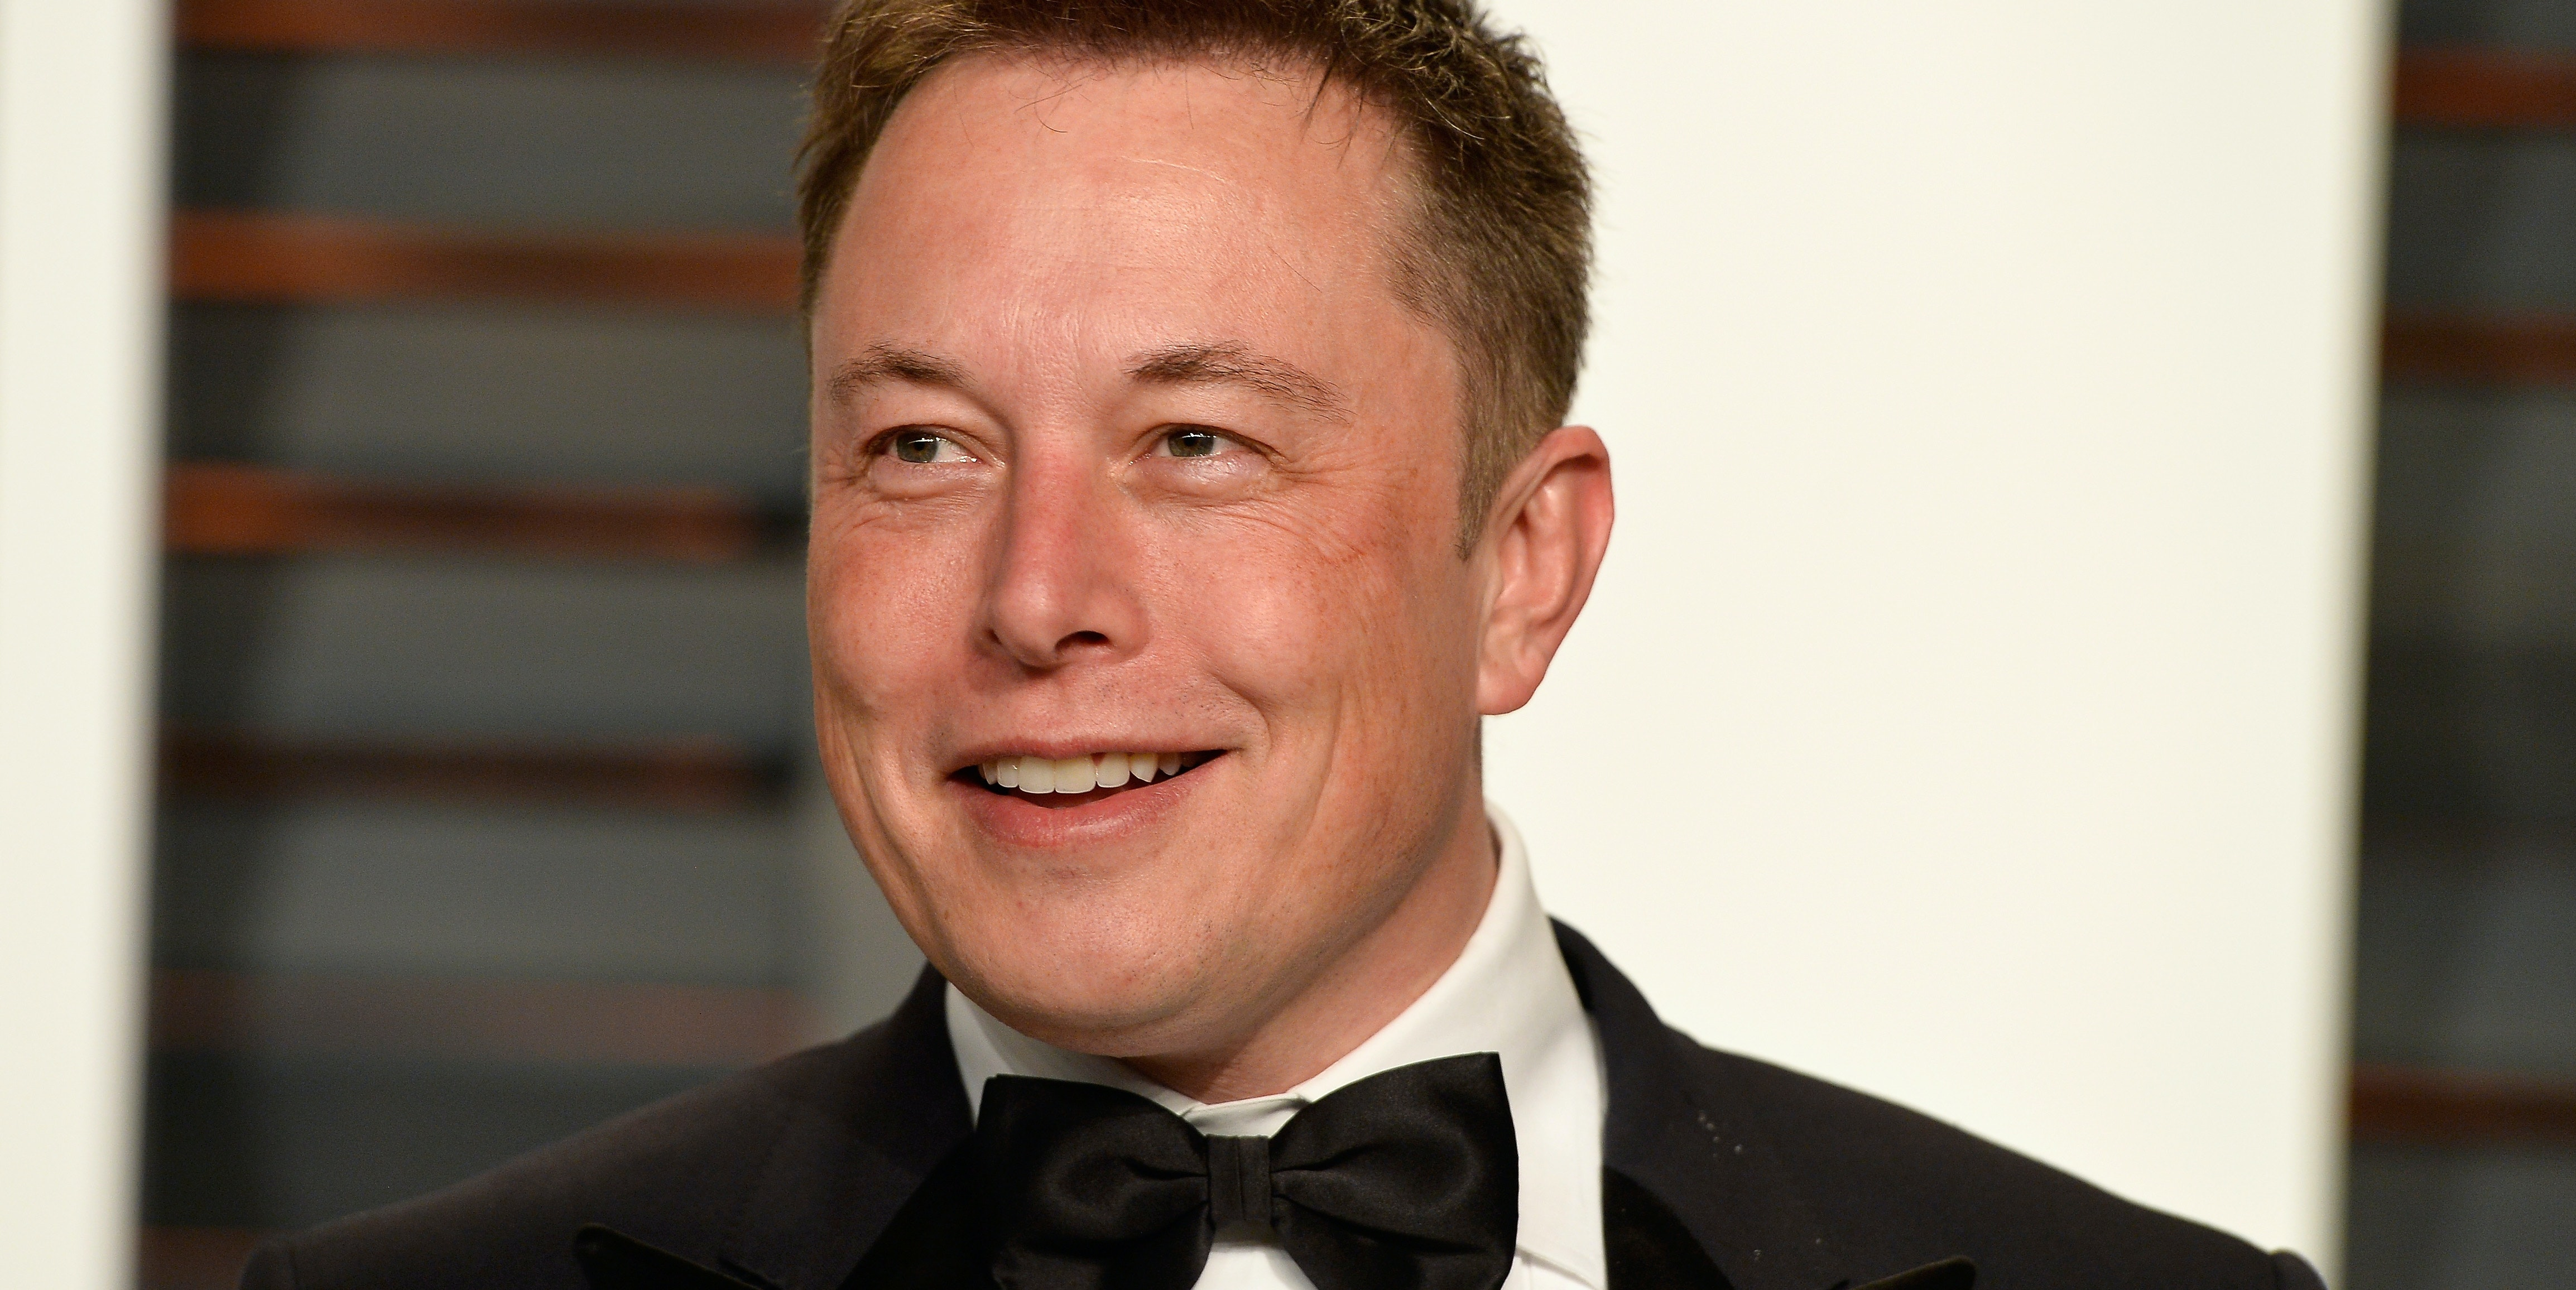 CEO of Tesla and Space X Elon Musk says the Tesla Autopilot Vision Neural Net is working well.